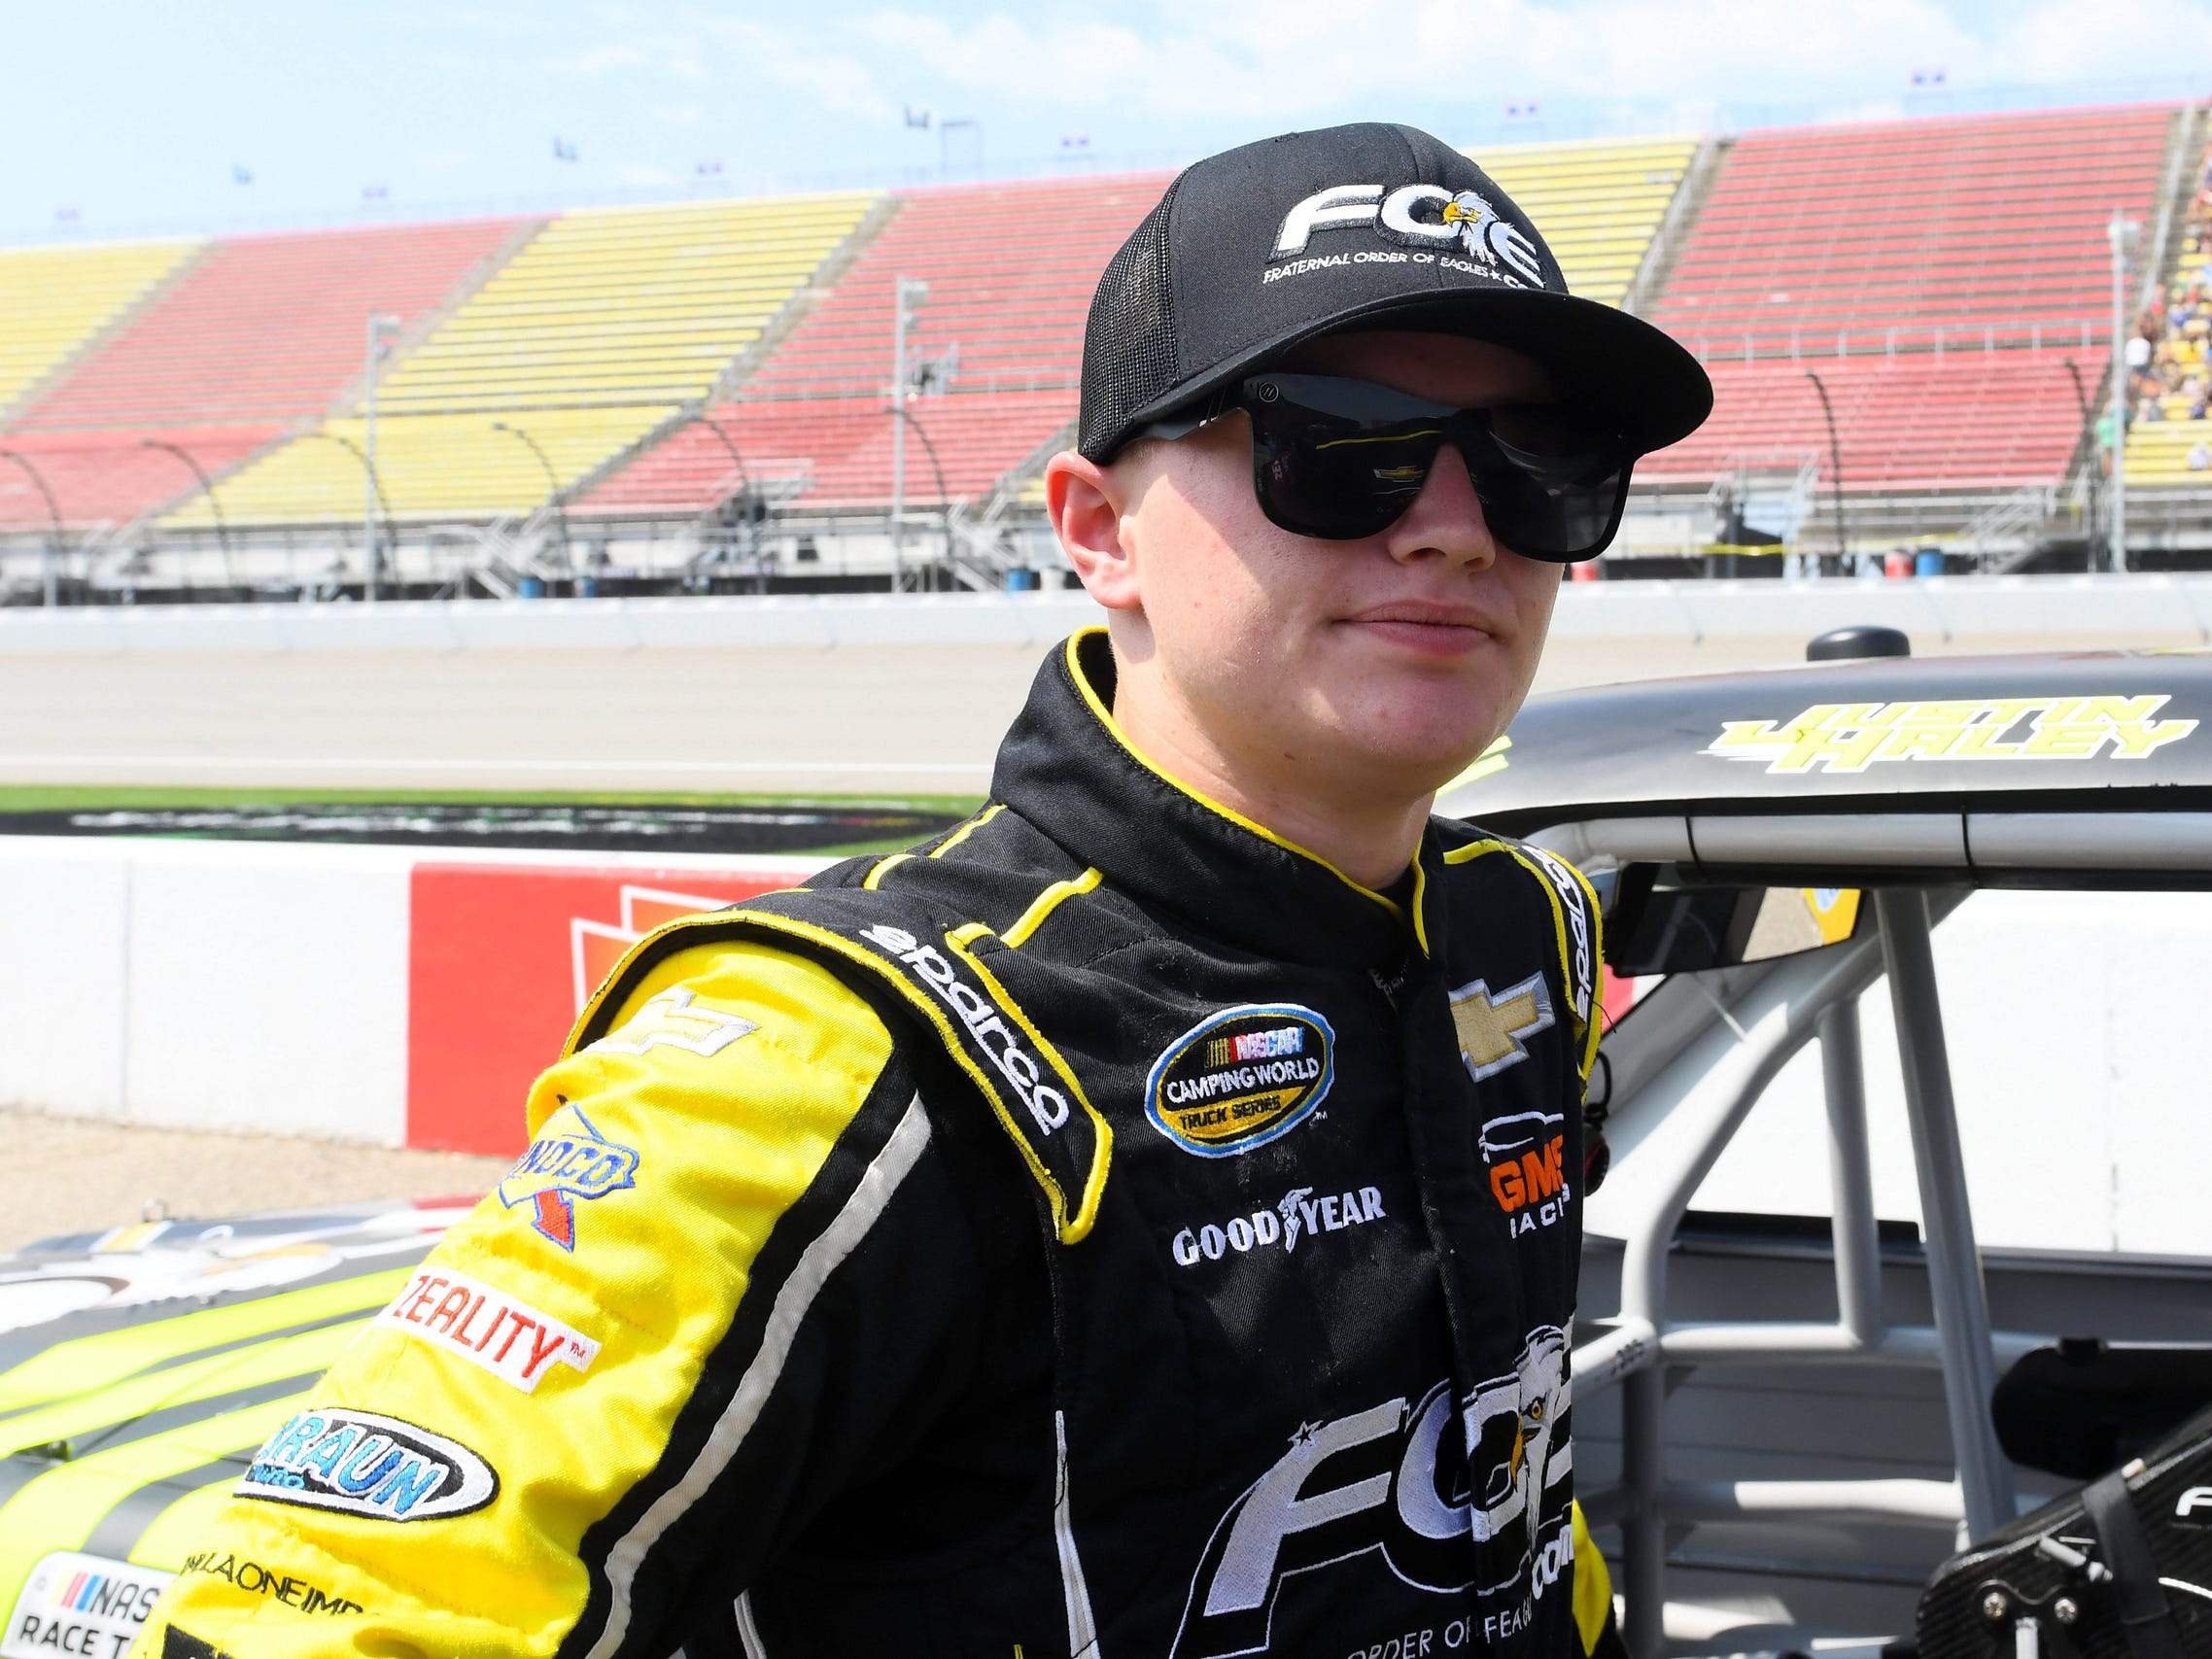 NASCAR Camping World Truck Series driver Justin Haley (24) before the start of the Corrigan 200 at Michigan International Speedway.